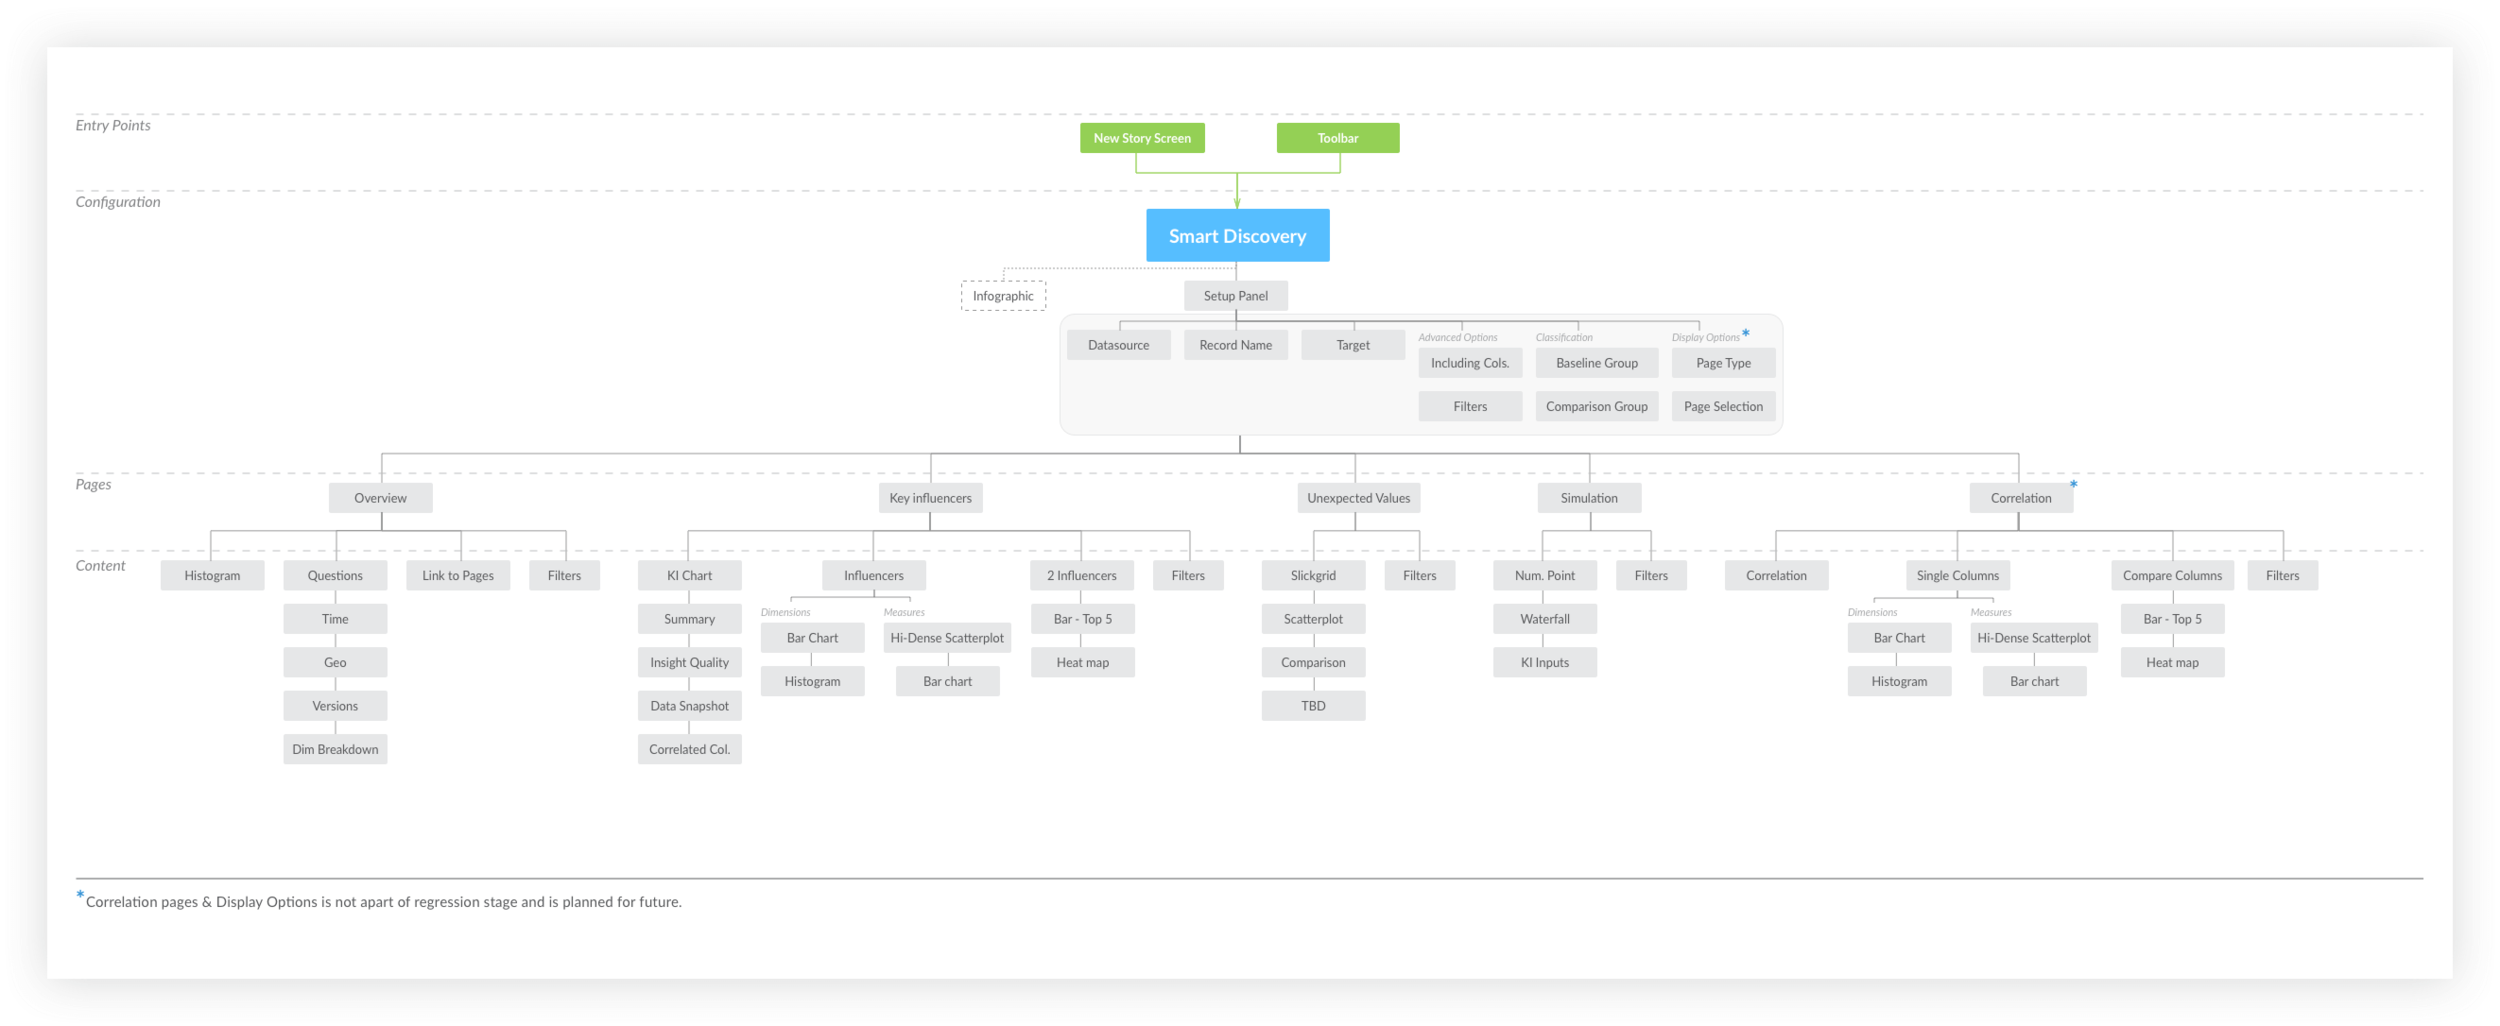 Site Map: Breaking apart the workflow and content of Smart Discovery.